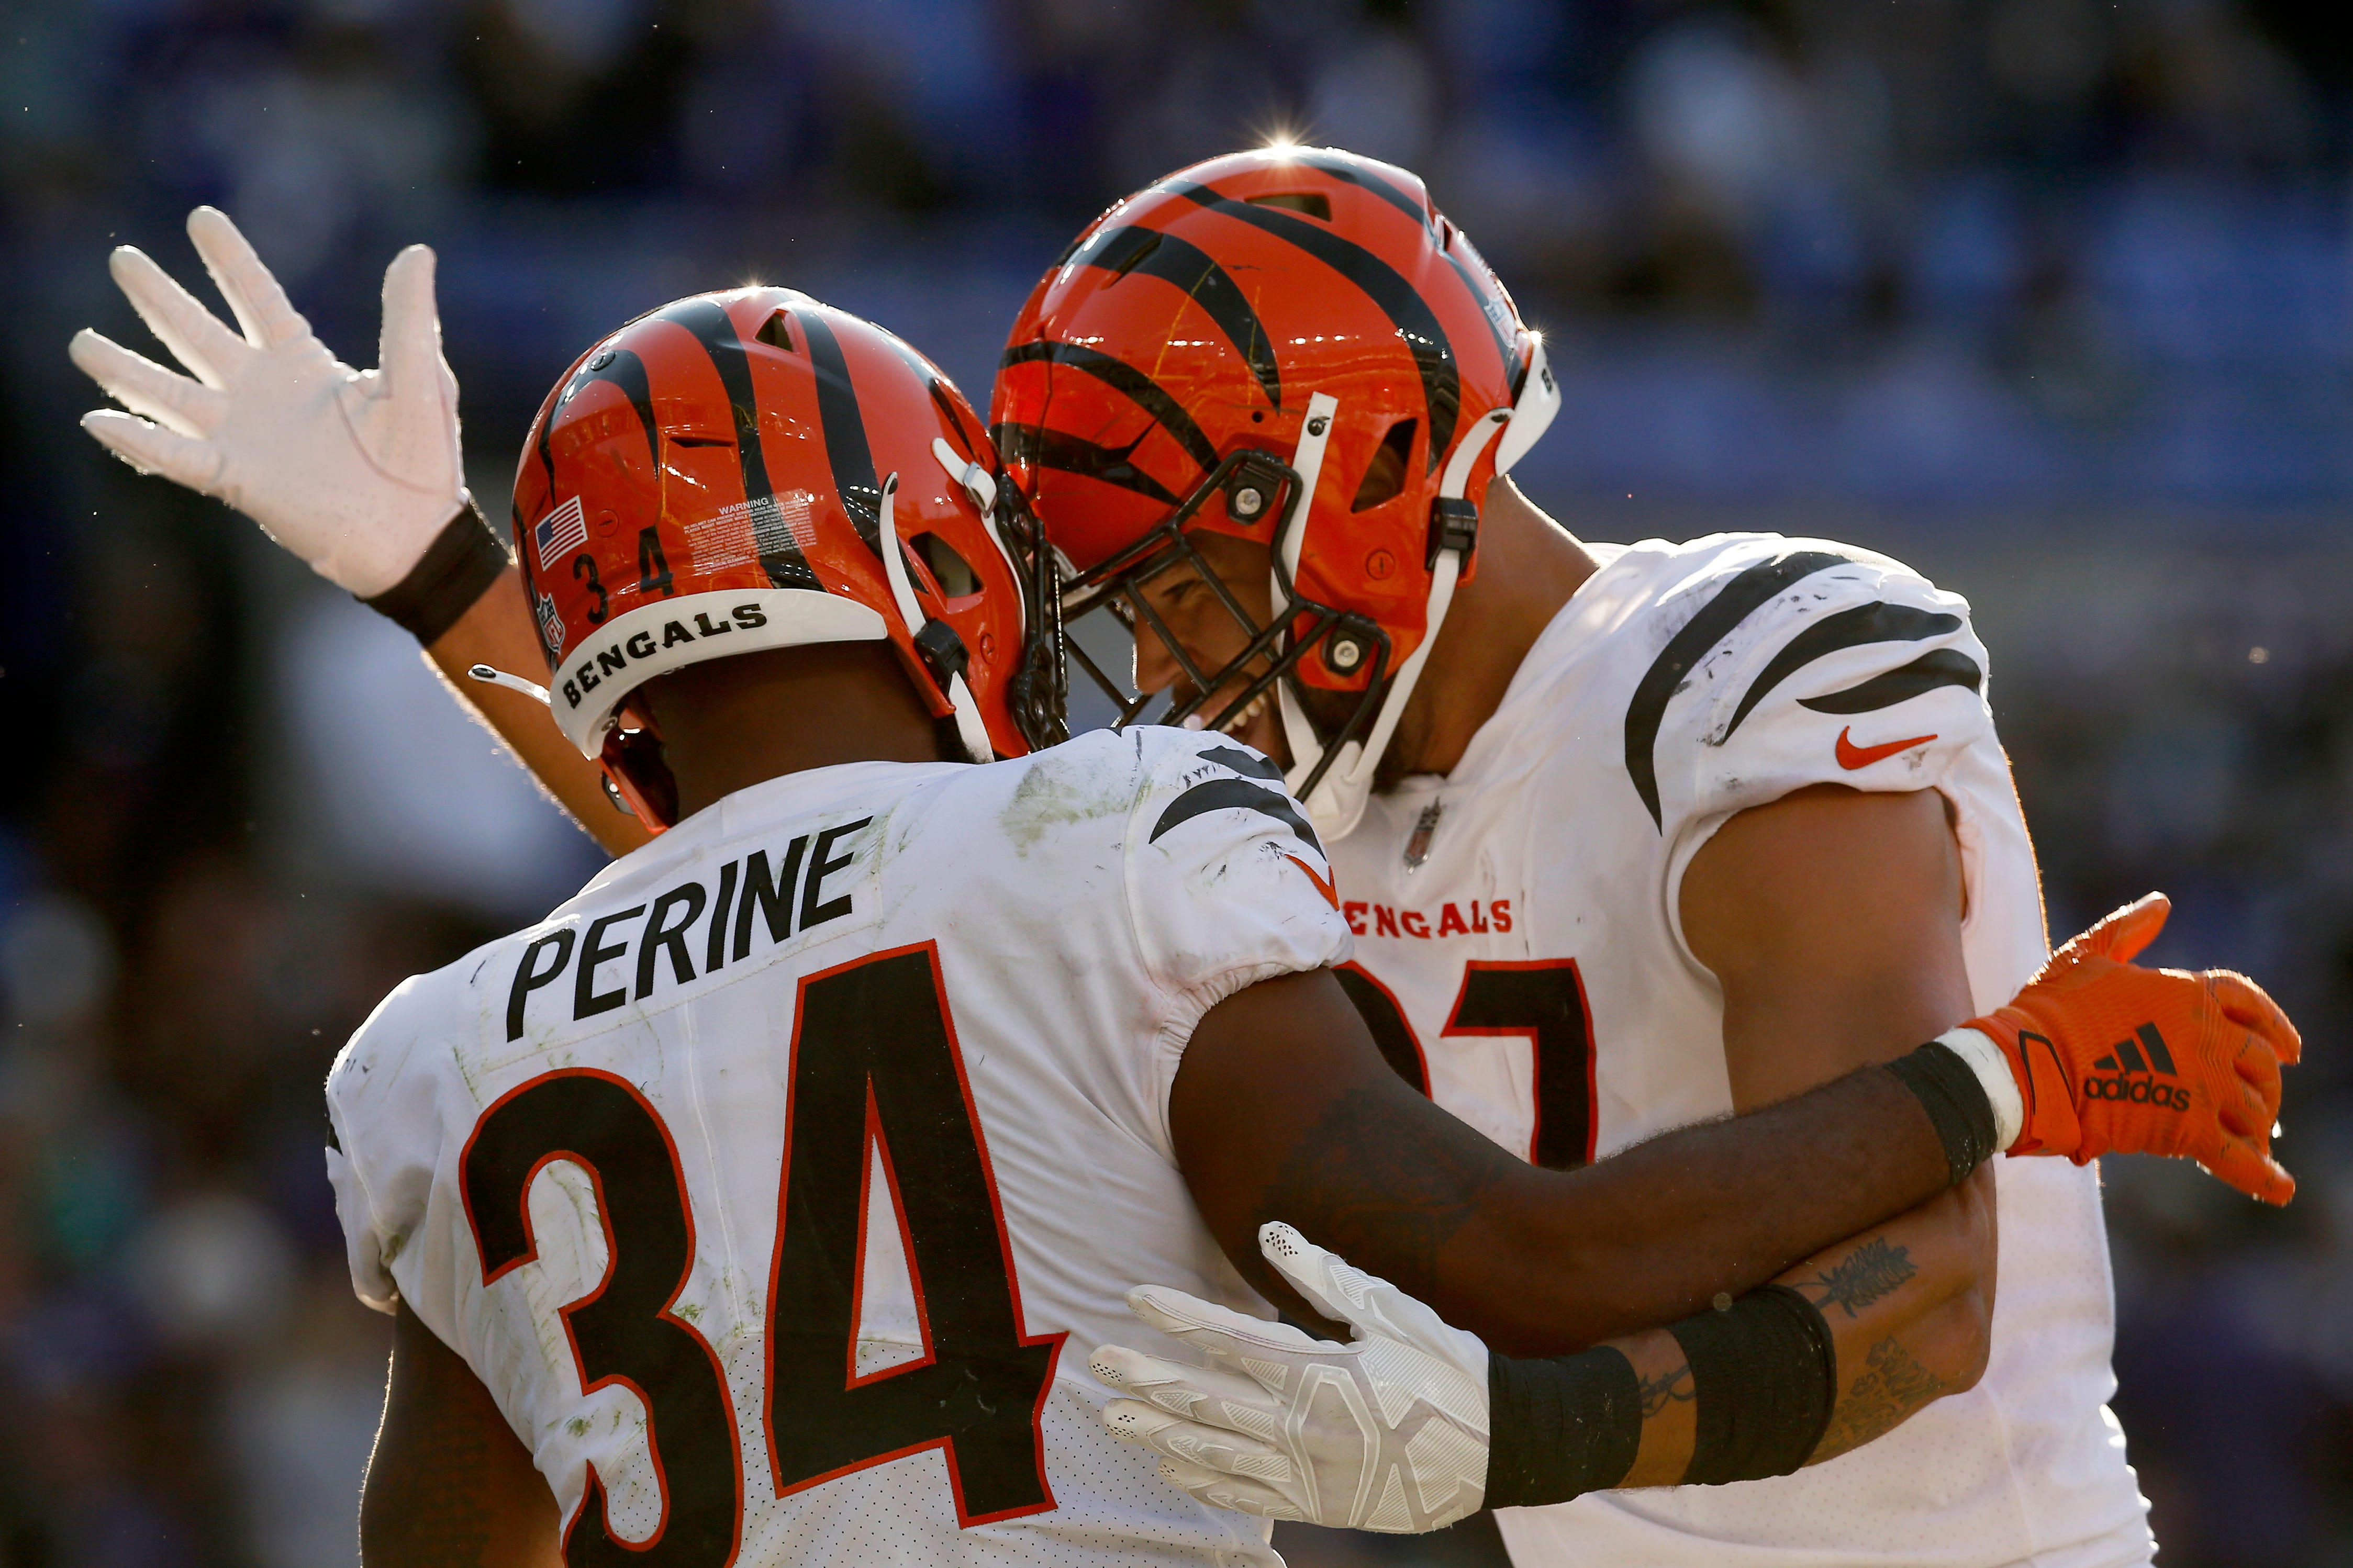 'It's a different team': Bengals dominate Ravens in second half en route to 41-17 win, AFC North lead